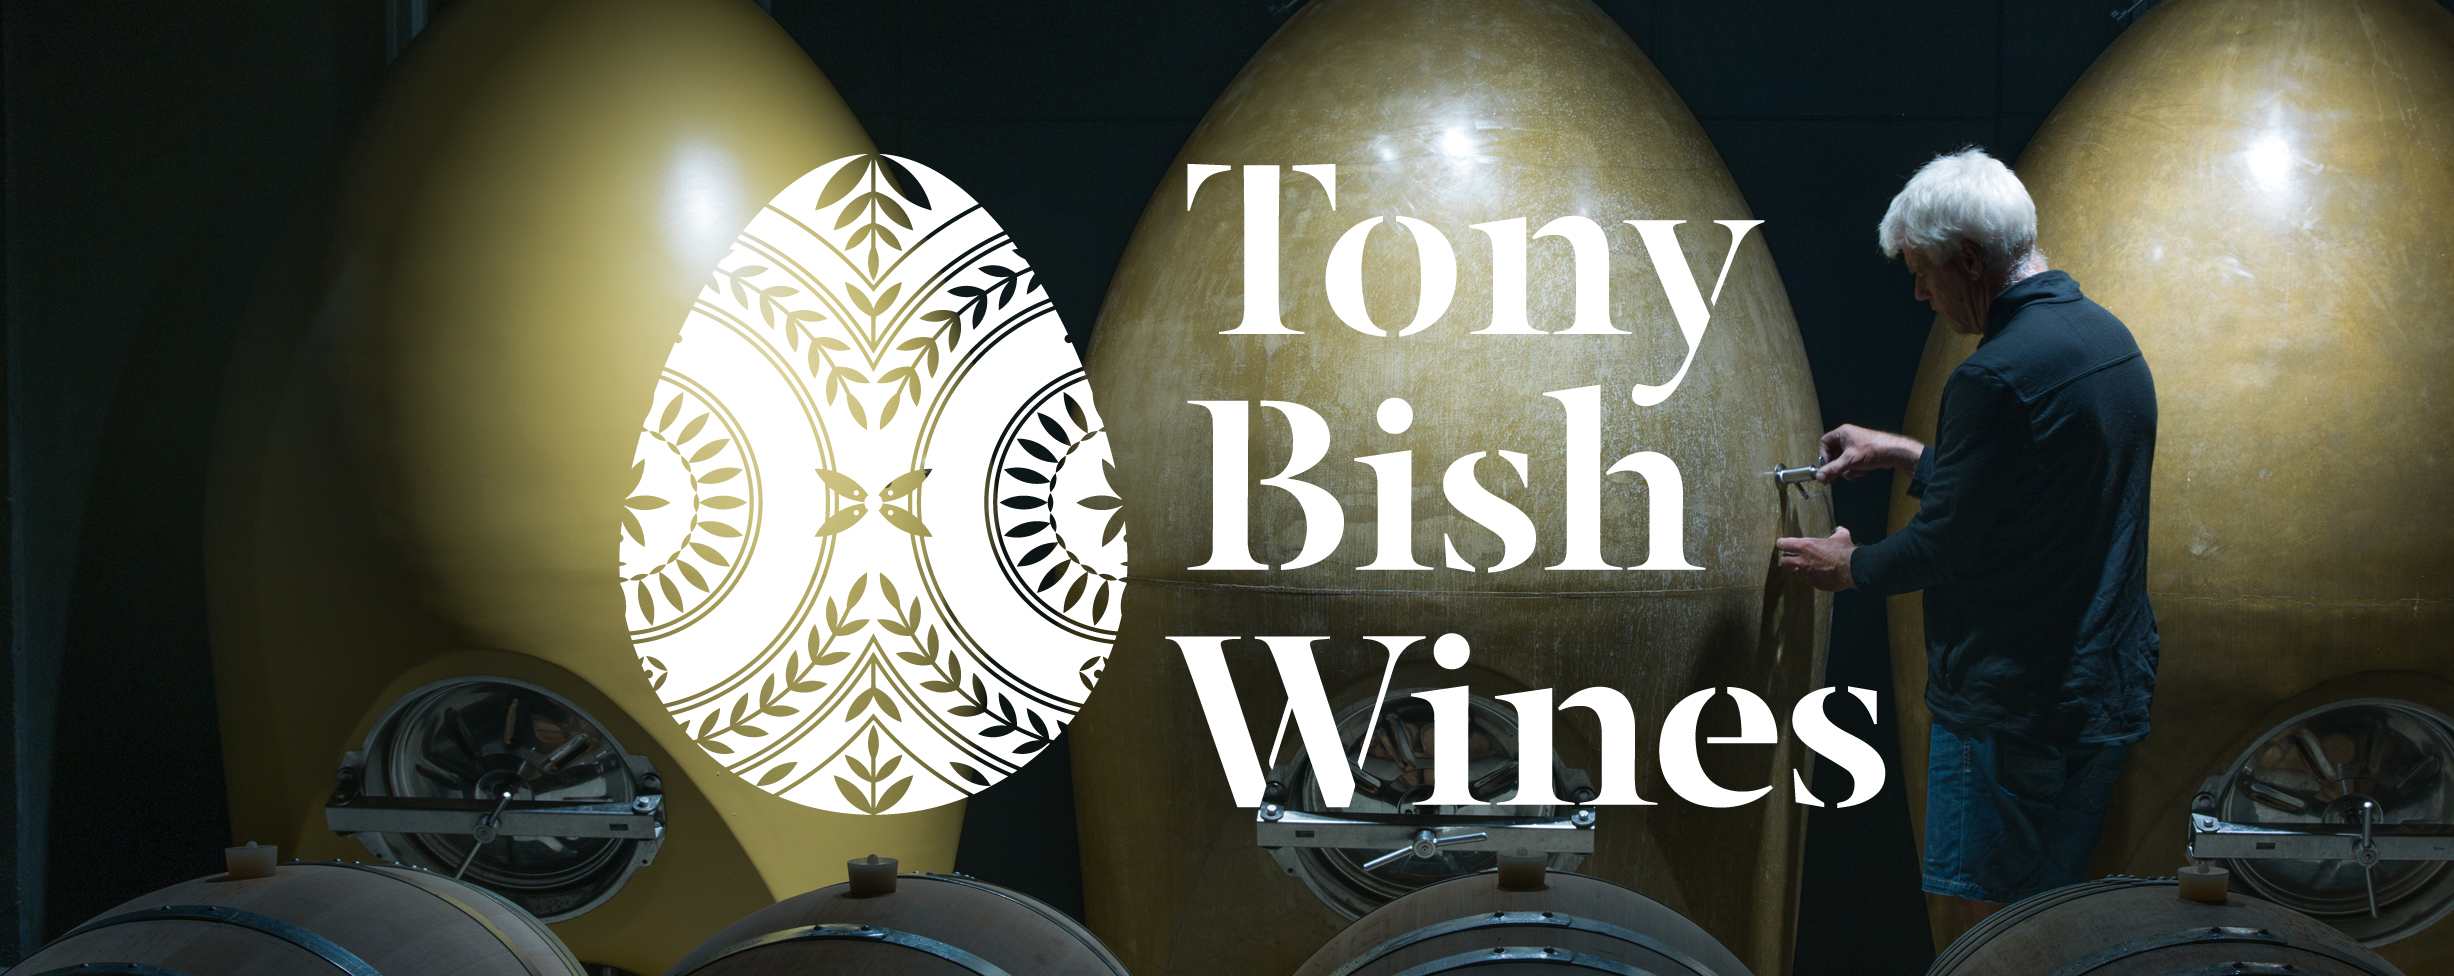 TONY BISH WINES    HAWKES BAY, NZ   Tony Bish is one of this country's most highly regarded winemakers, with Chardonnay as the variety he is best-known for. His track record with the Sacred Hill 'Riflemans' one of NewZealand's best Chardonnays stretches back to 1995. When Tony and his wife Karryn introduced their own label in 2014, it was no surprise that the focus would be on this variety. The 'Fat &Sassy' Chardonnay is Tony's expression that has great appeal across the market; the name says it all.  The 'Tony Bish' brand now includes the distinctively oaked 'Heartwood', the lees-complexed'Golden Egg', made in concrete fermenters, and the individual 'Skeetfield' single vineyard wine.All of these wines, and a strong selection of their friends' wines are available to be enjoyed at theirUrban Winery in the Ahuriri district of Napier, where the Tony Bish wines are made